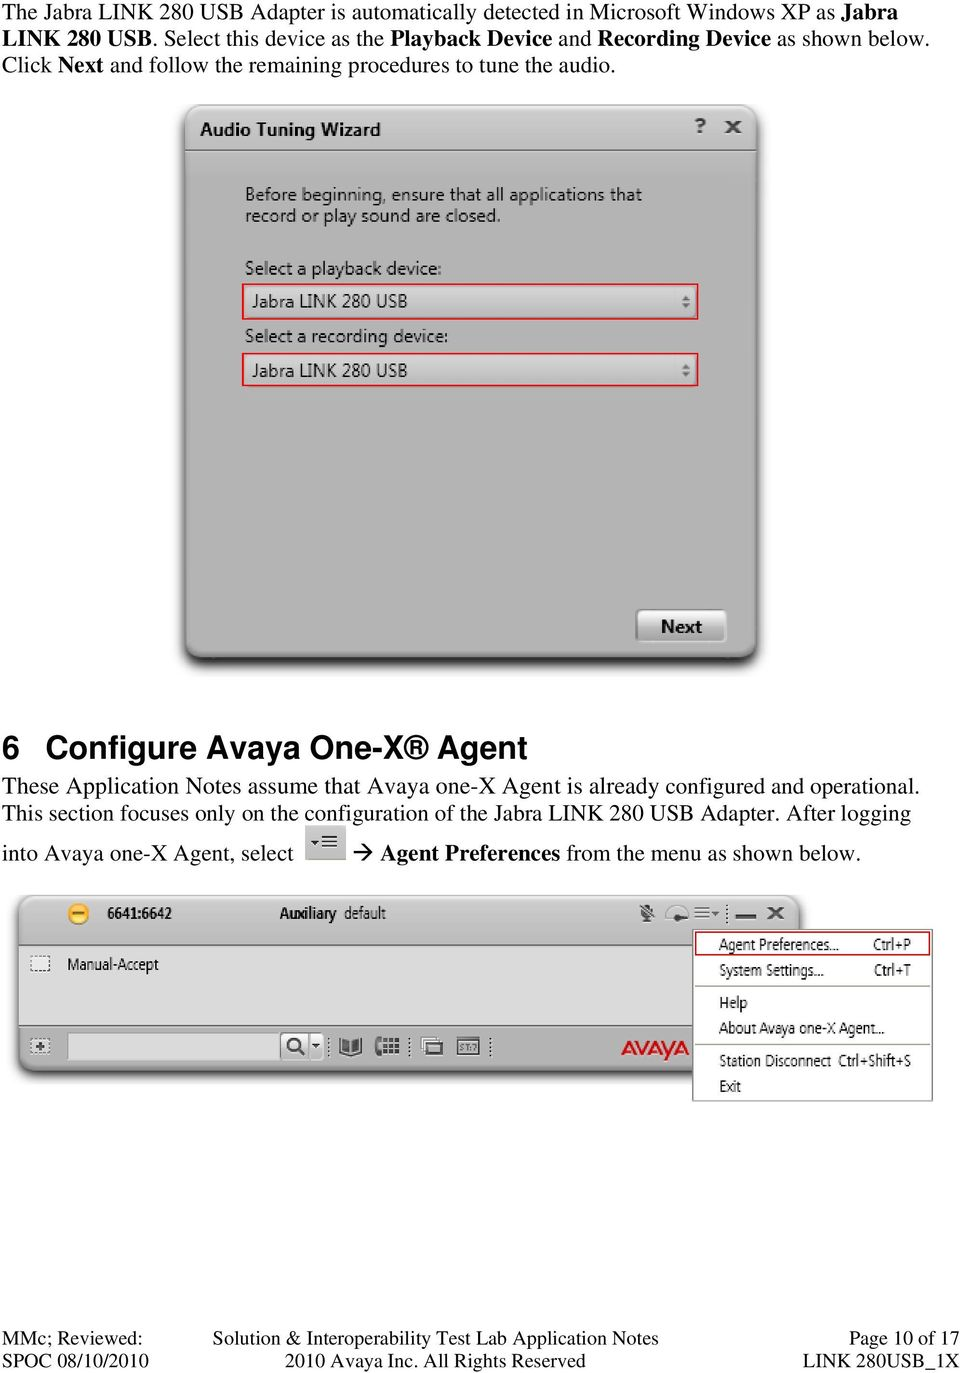 6 Configure Avaya One-X Agent These Application Notes assume that Avaya one-x Agent is already configured and operational.